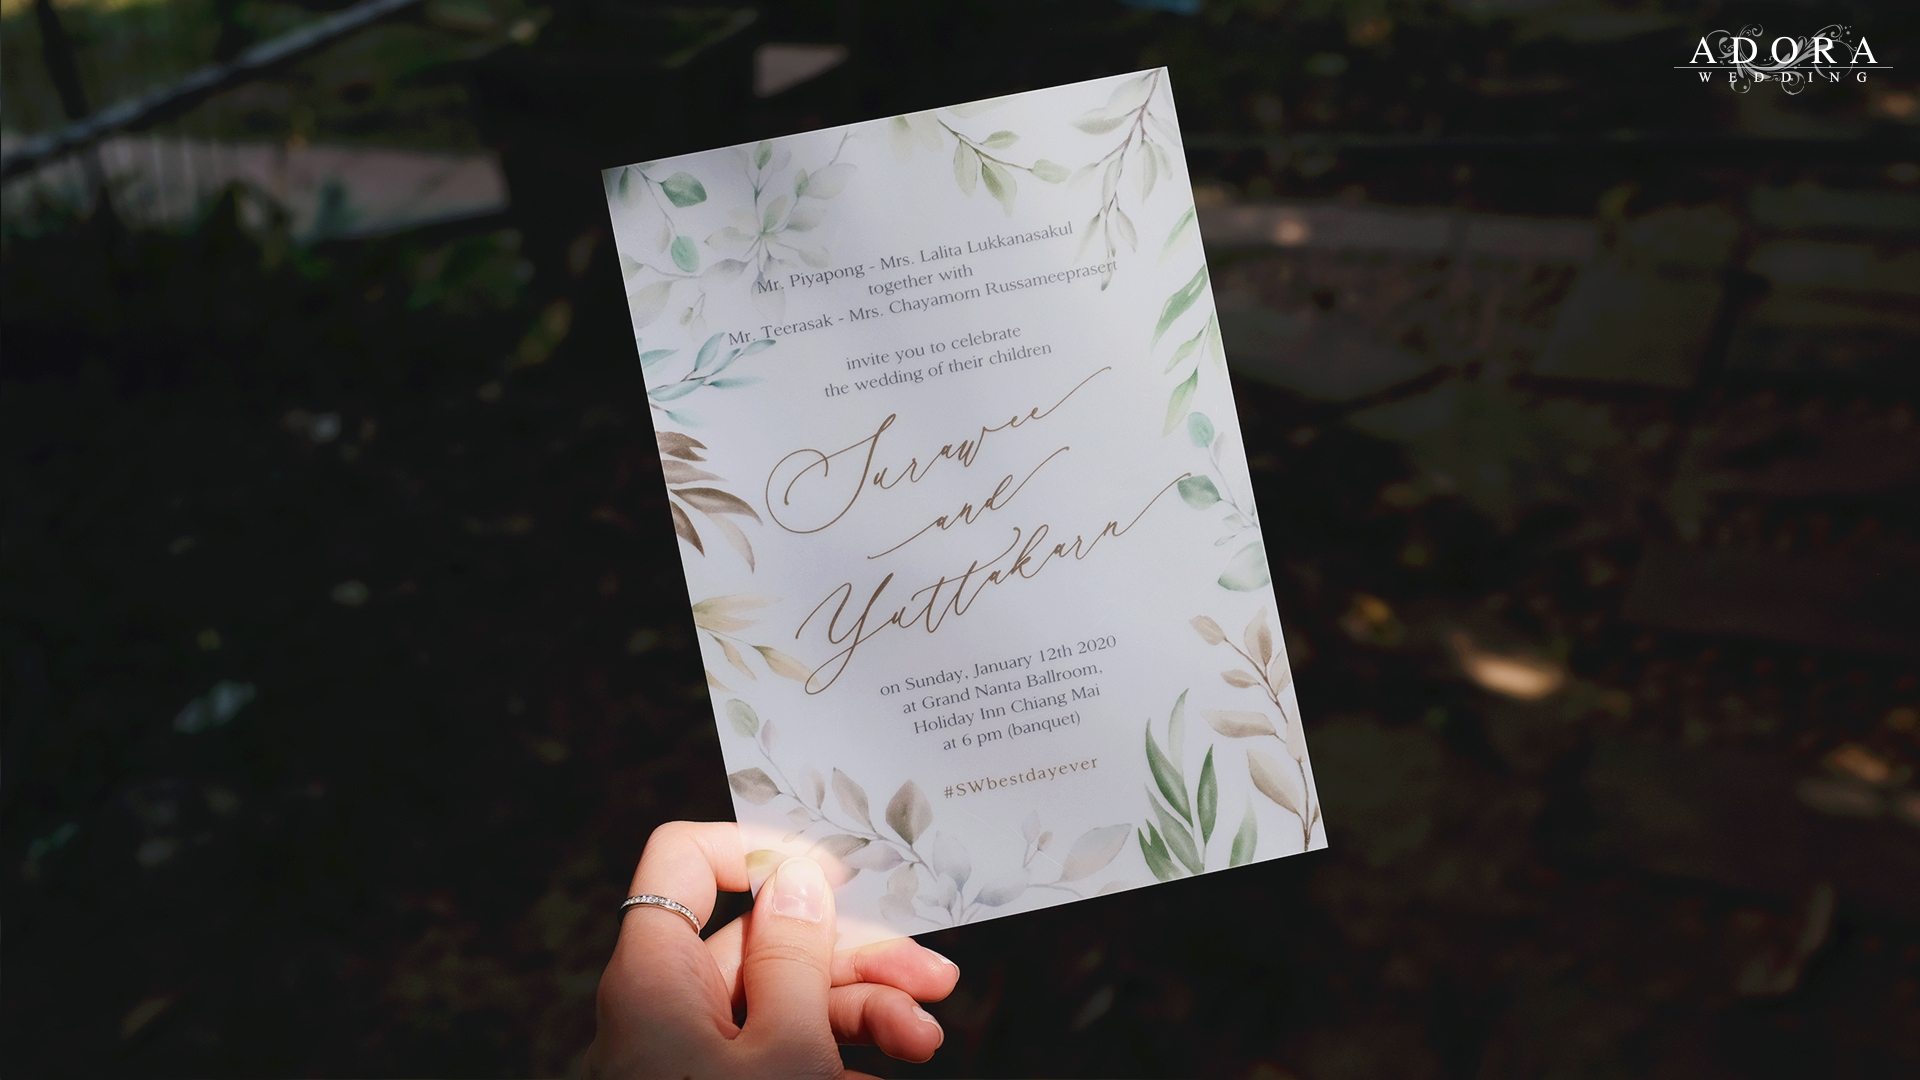 B121LM-wedding-card-6